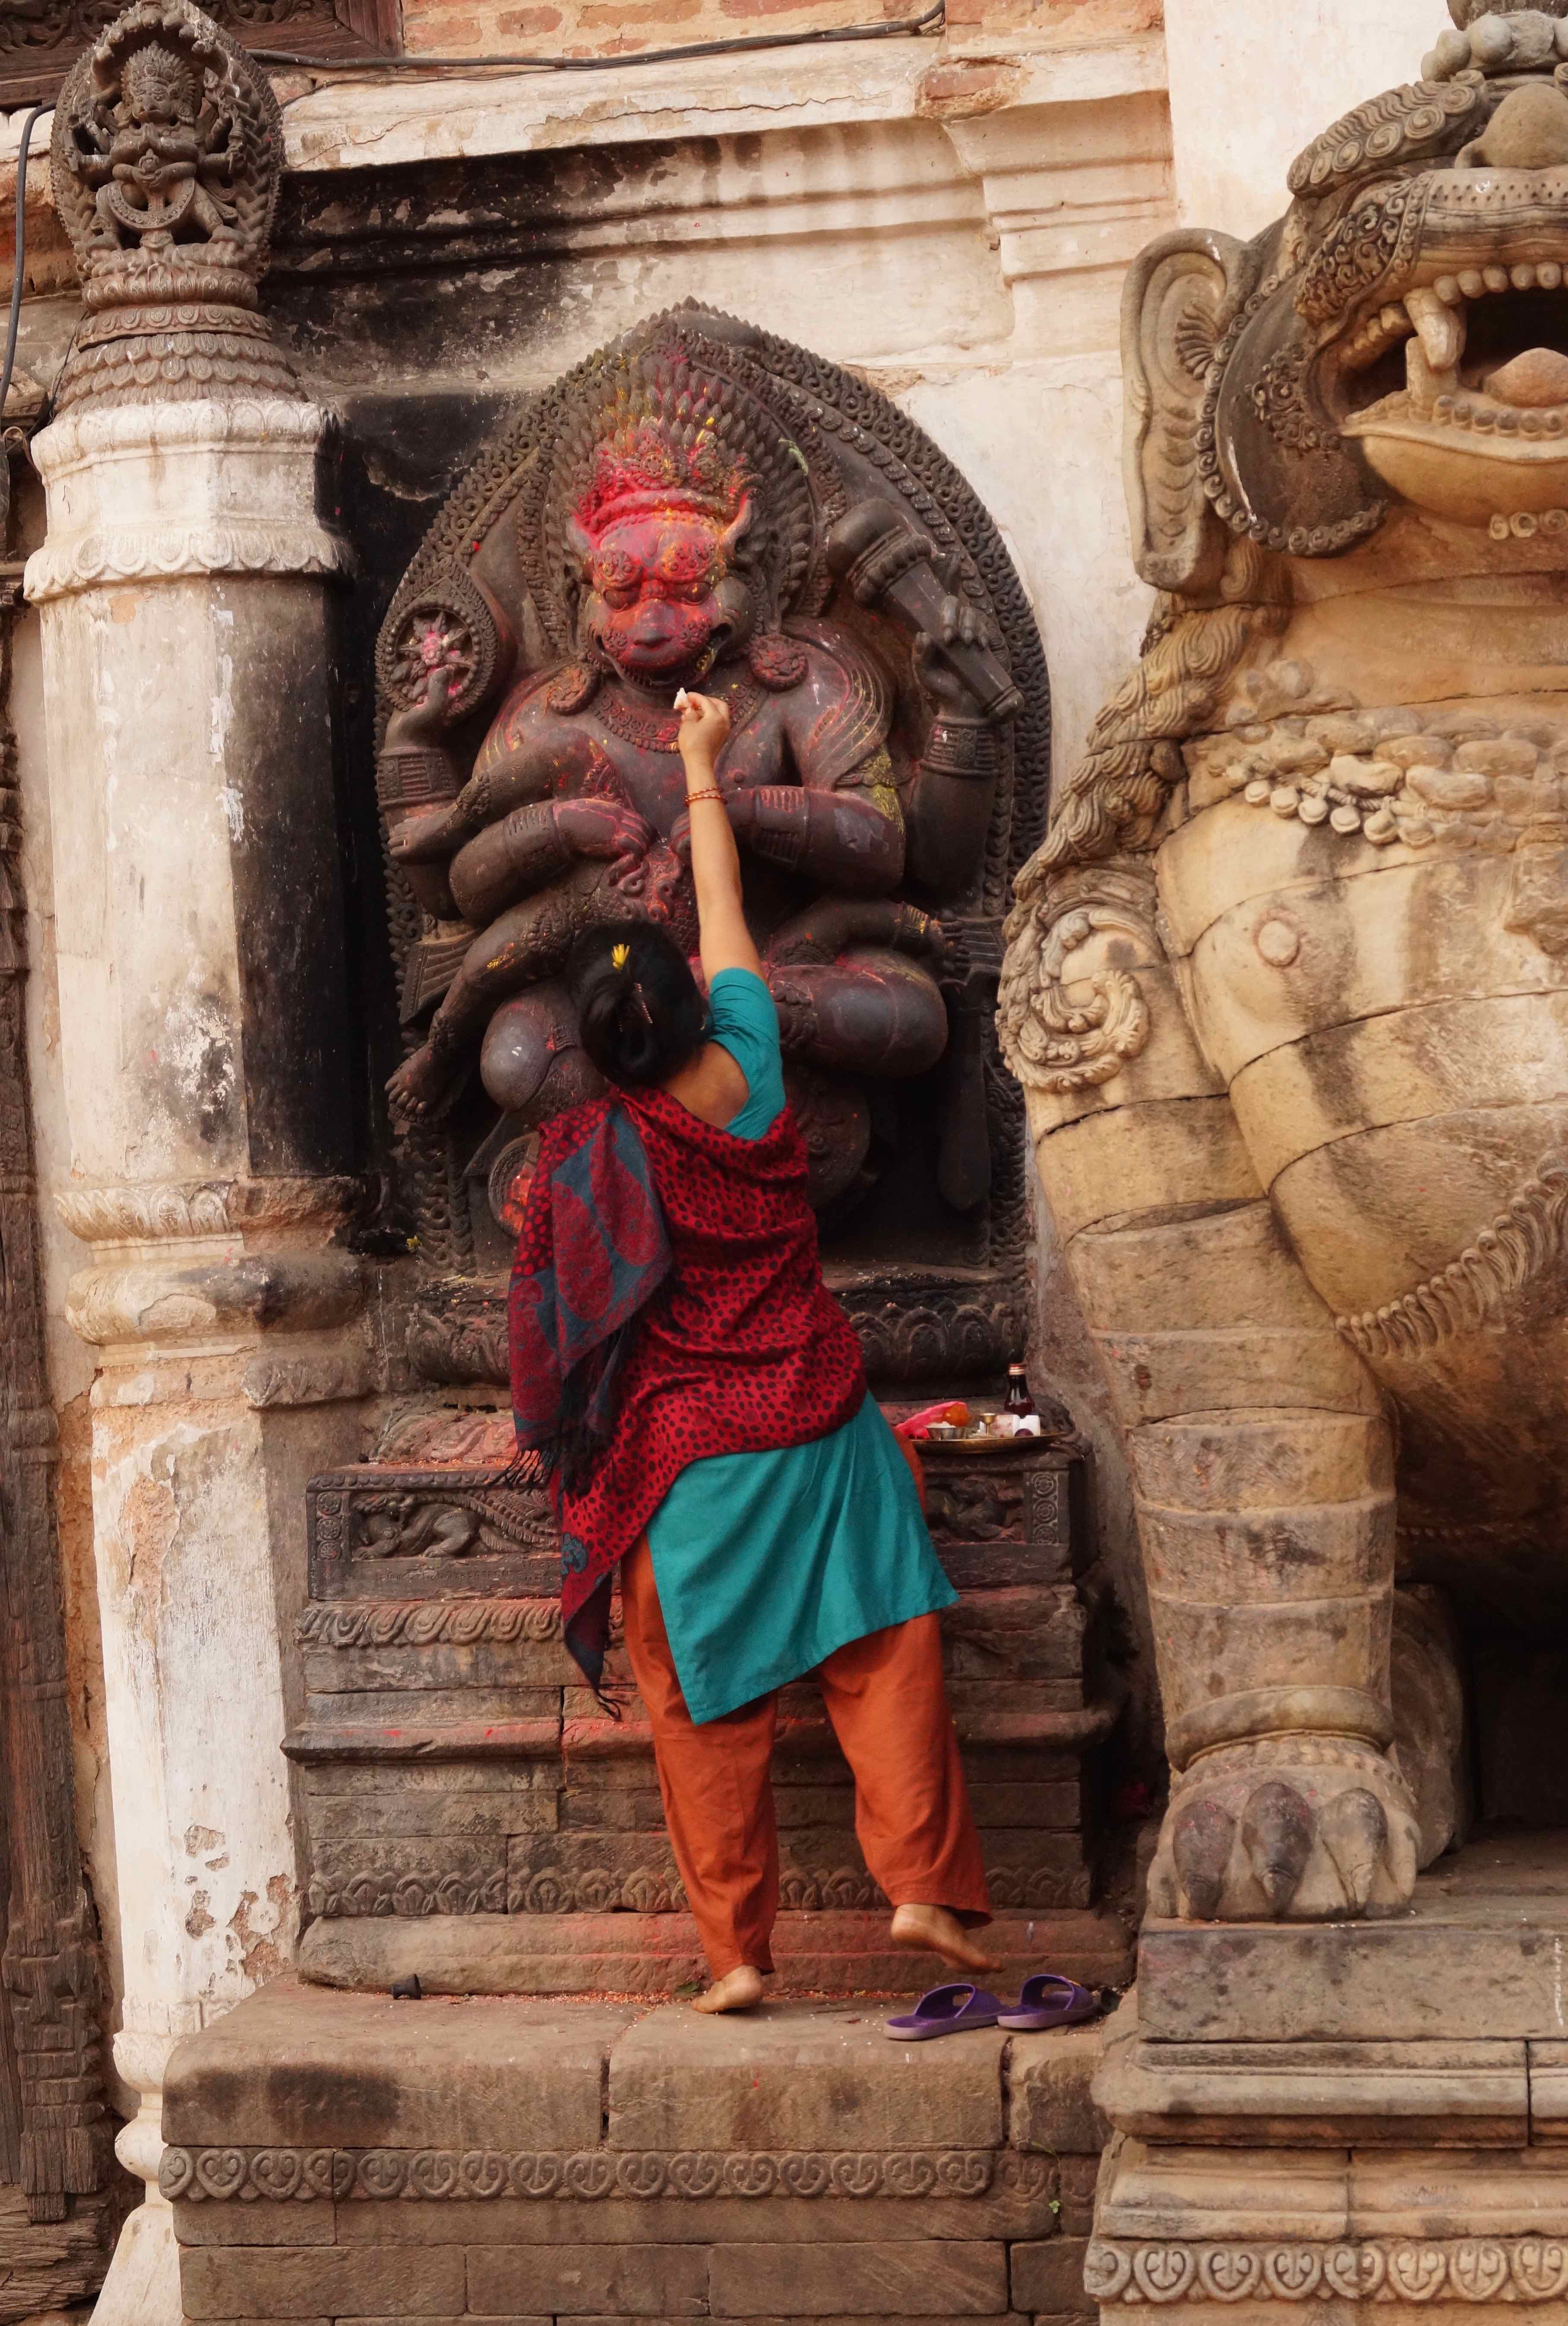 Offering to the Monkey God Hanuman on Durbar Square, Kathmandu Nepal